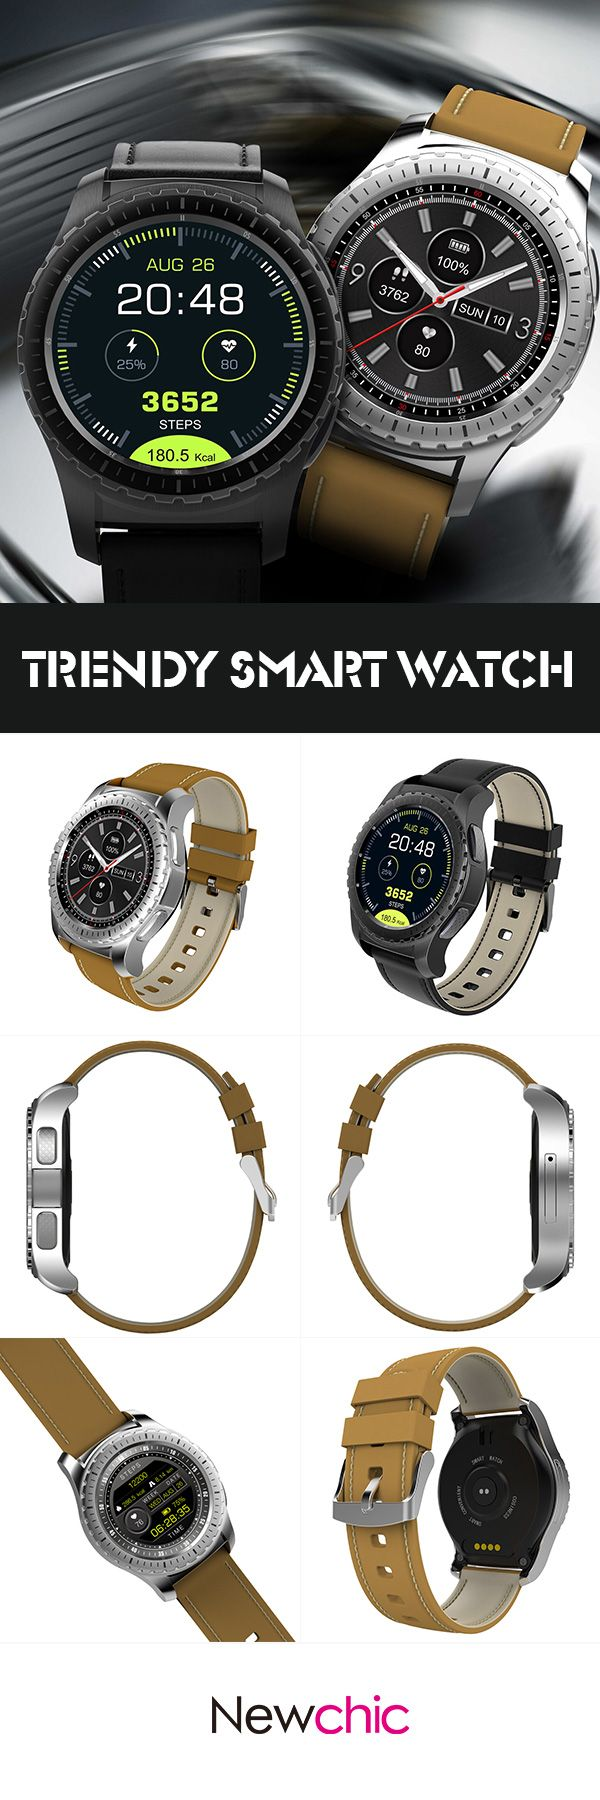 [Newchic Online Shopping] 58% OFF Trendy Smart Watch